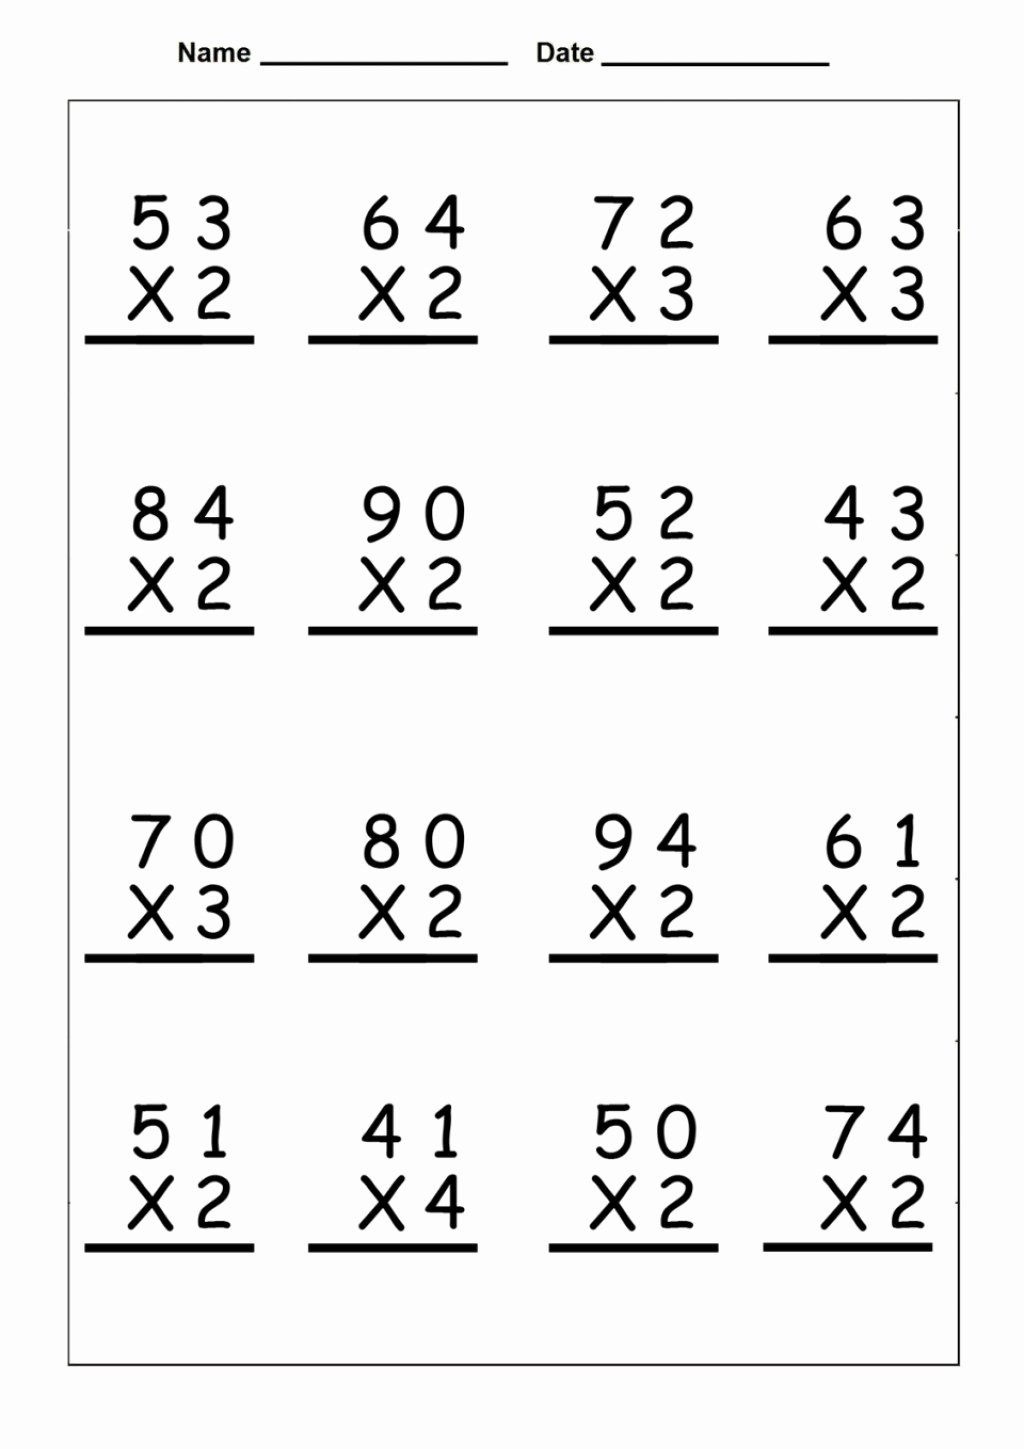 4th Grade Math Multiplication Worksheets Best Of Math Worksheet 59 Fantastic Printable Math Worksheets for